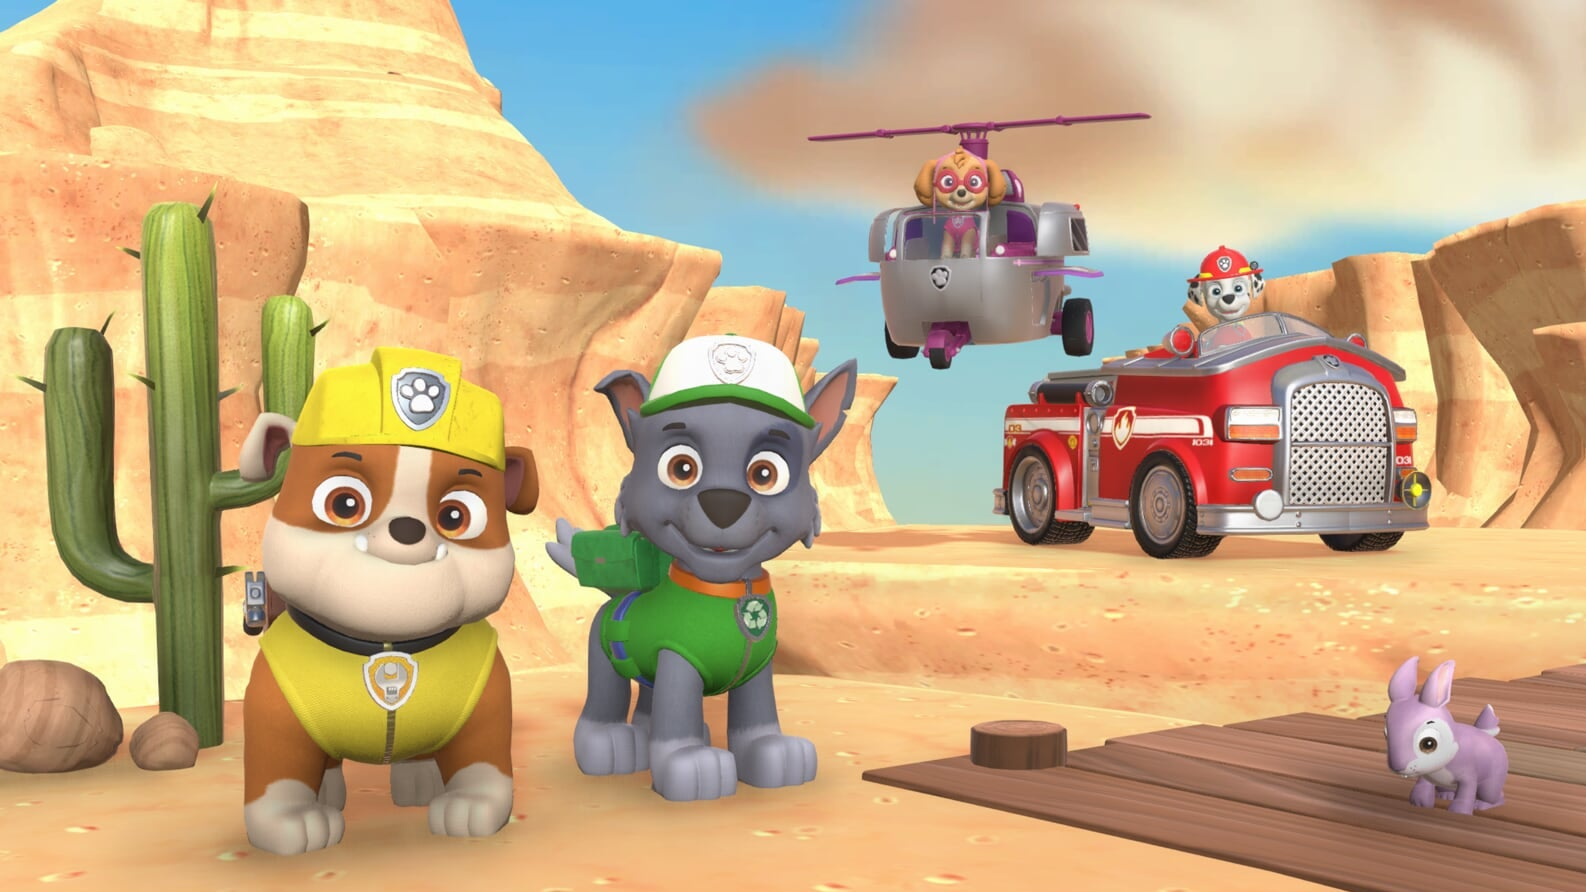 My Son And I Have Issues With The Latest Paw Patrol Game